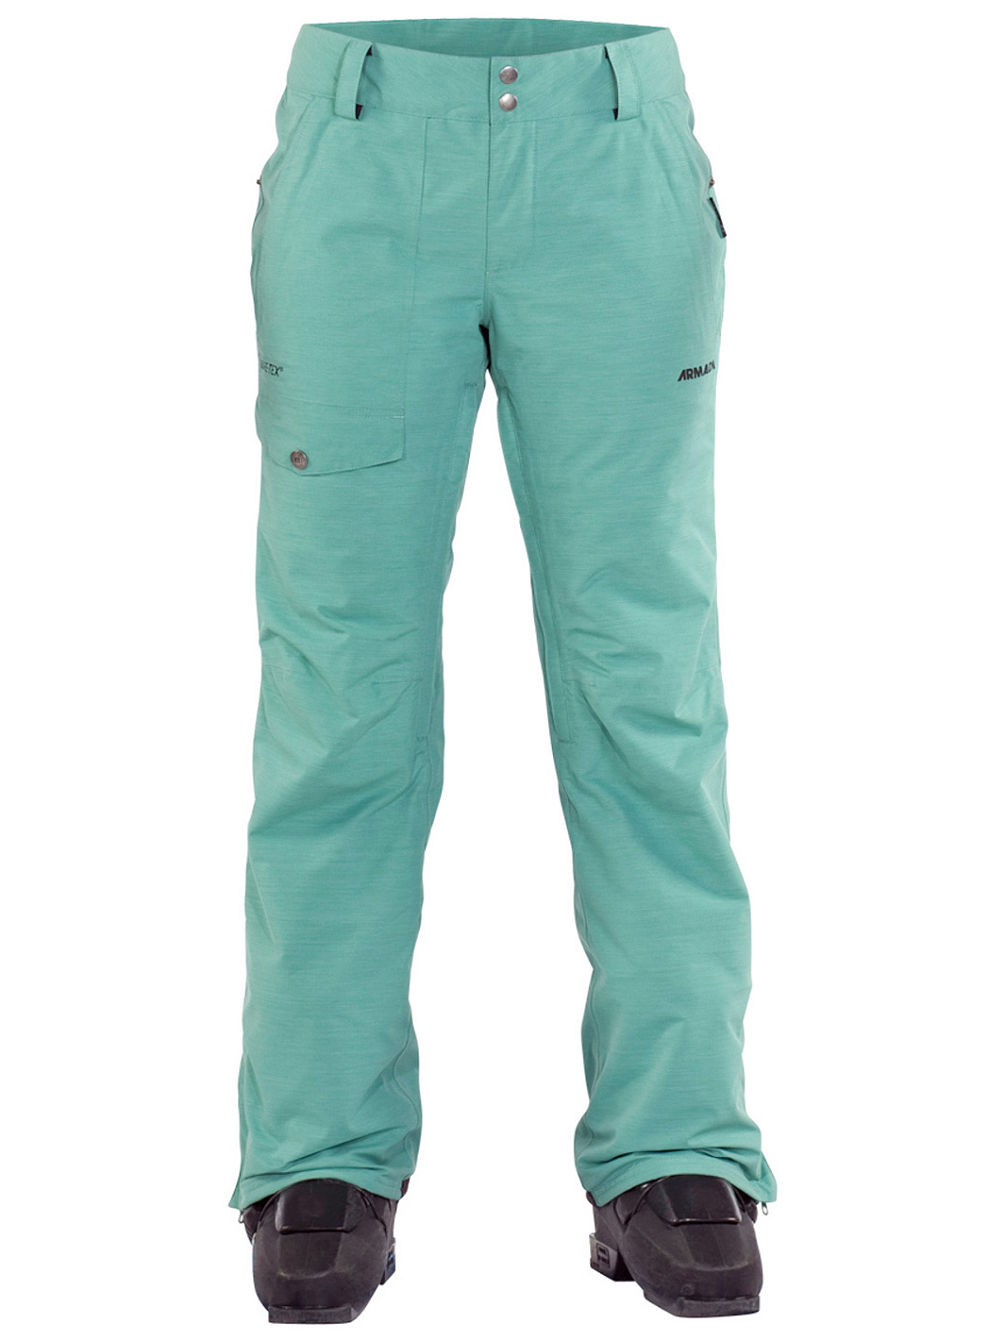 Kiska Gore-Tex Insulated Pants